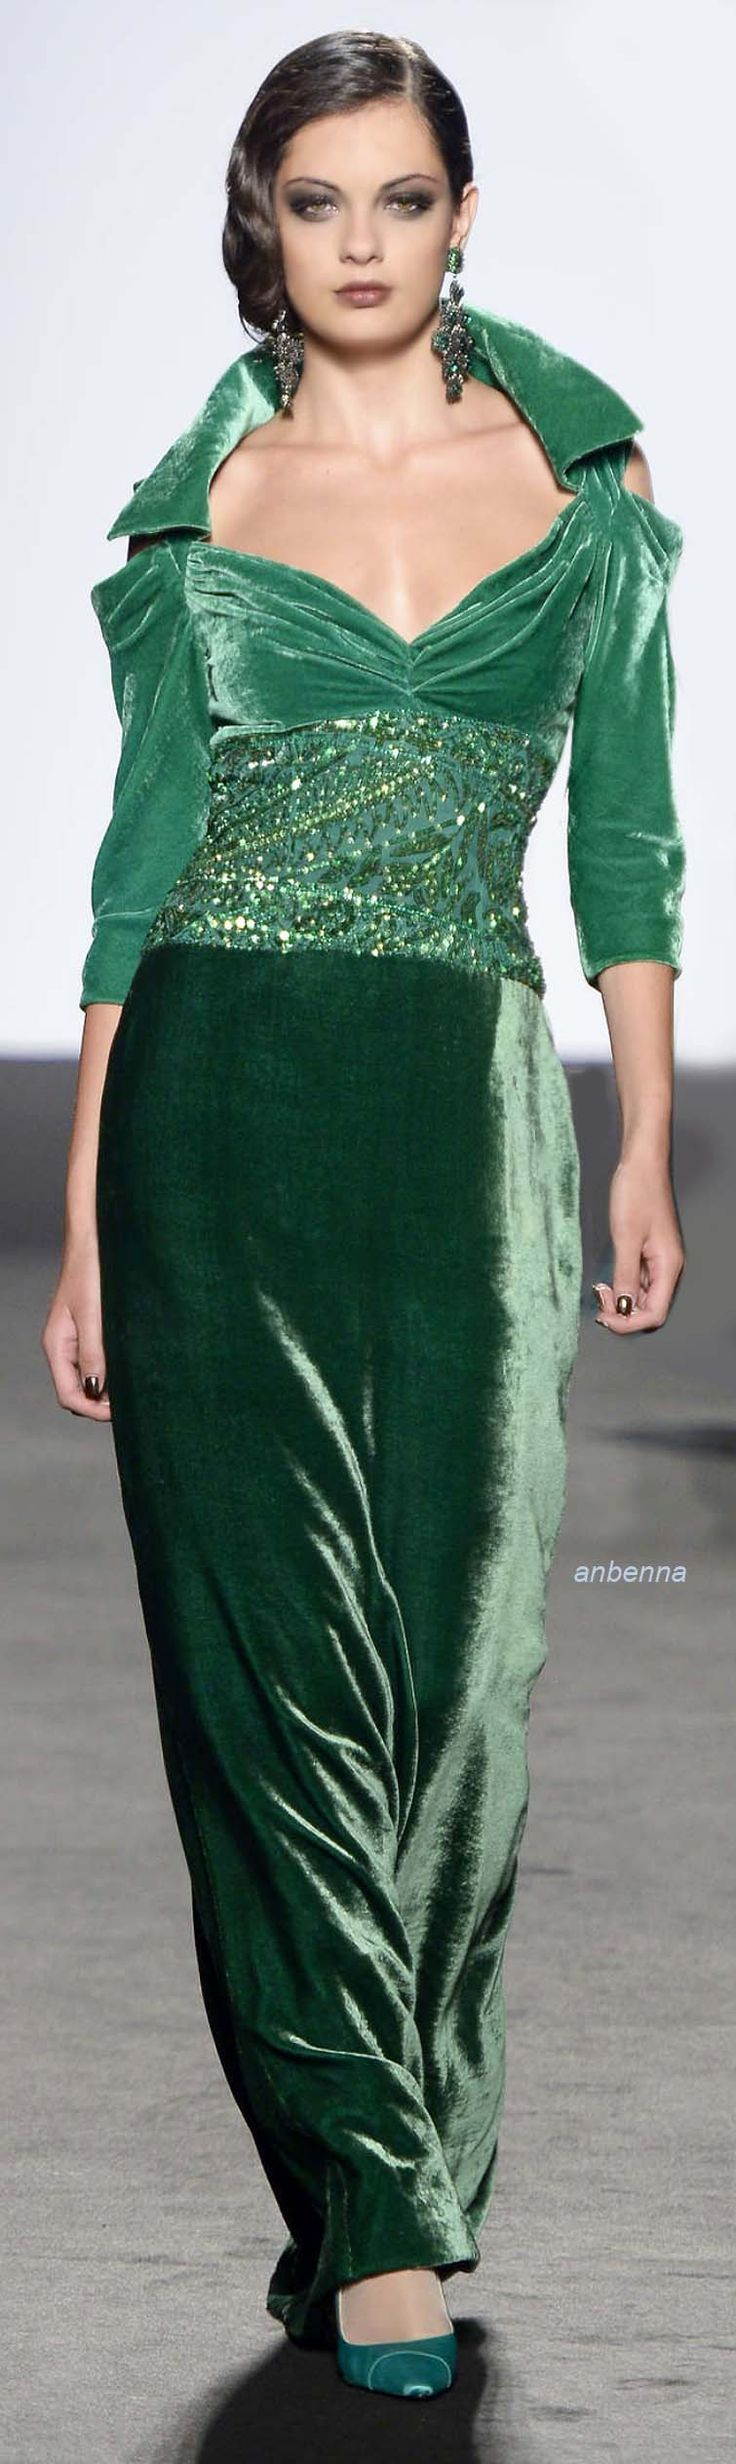 I love this designer outfit! The emerald green and pine green pants are gorgeous! Pretty as a picture!